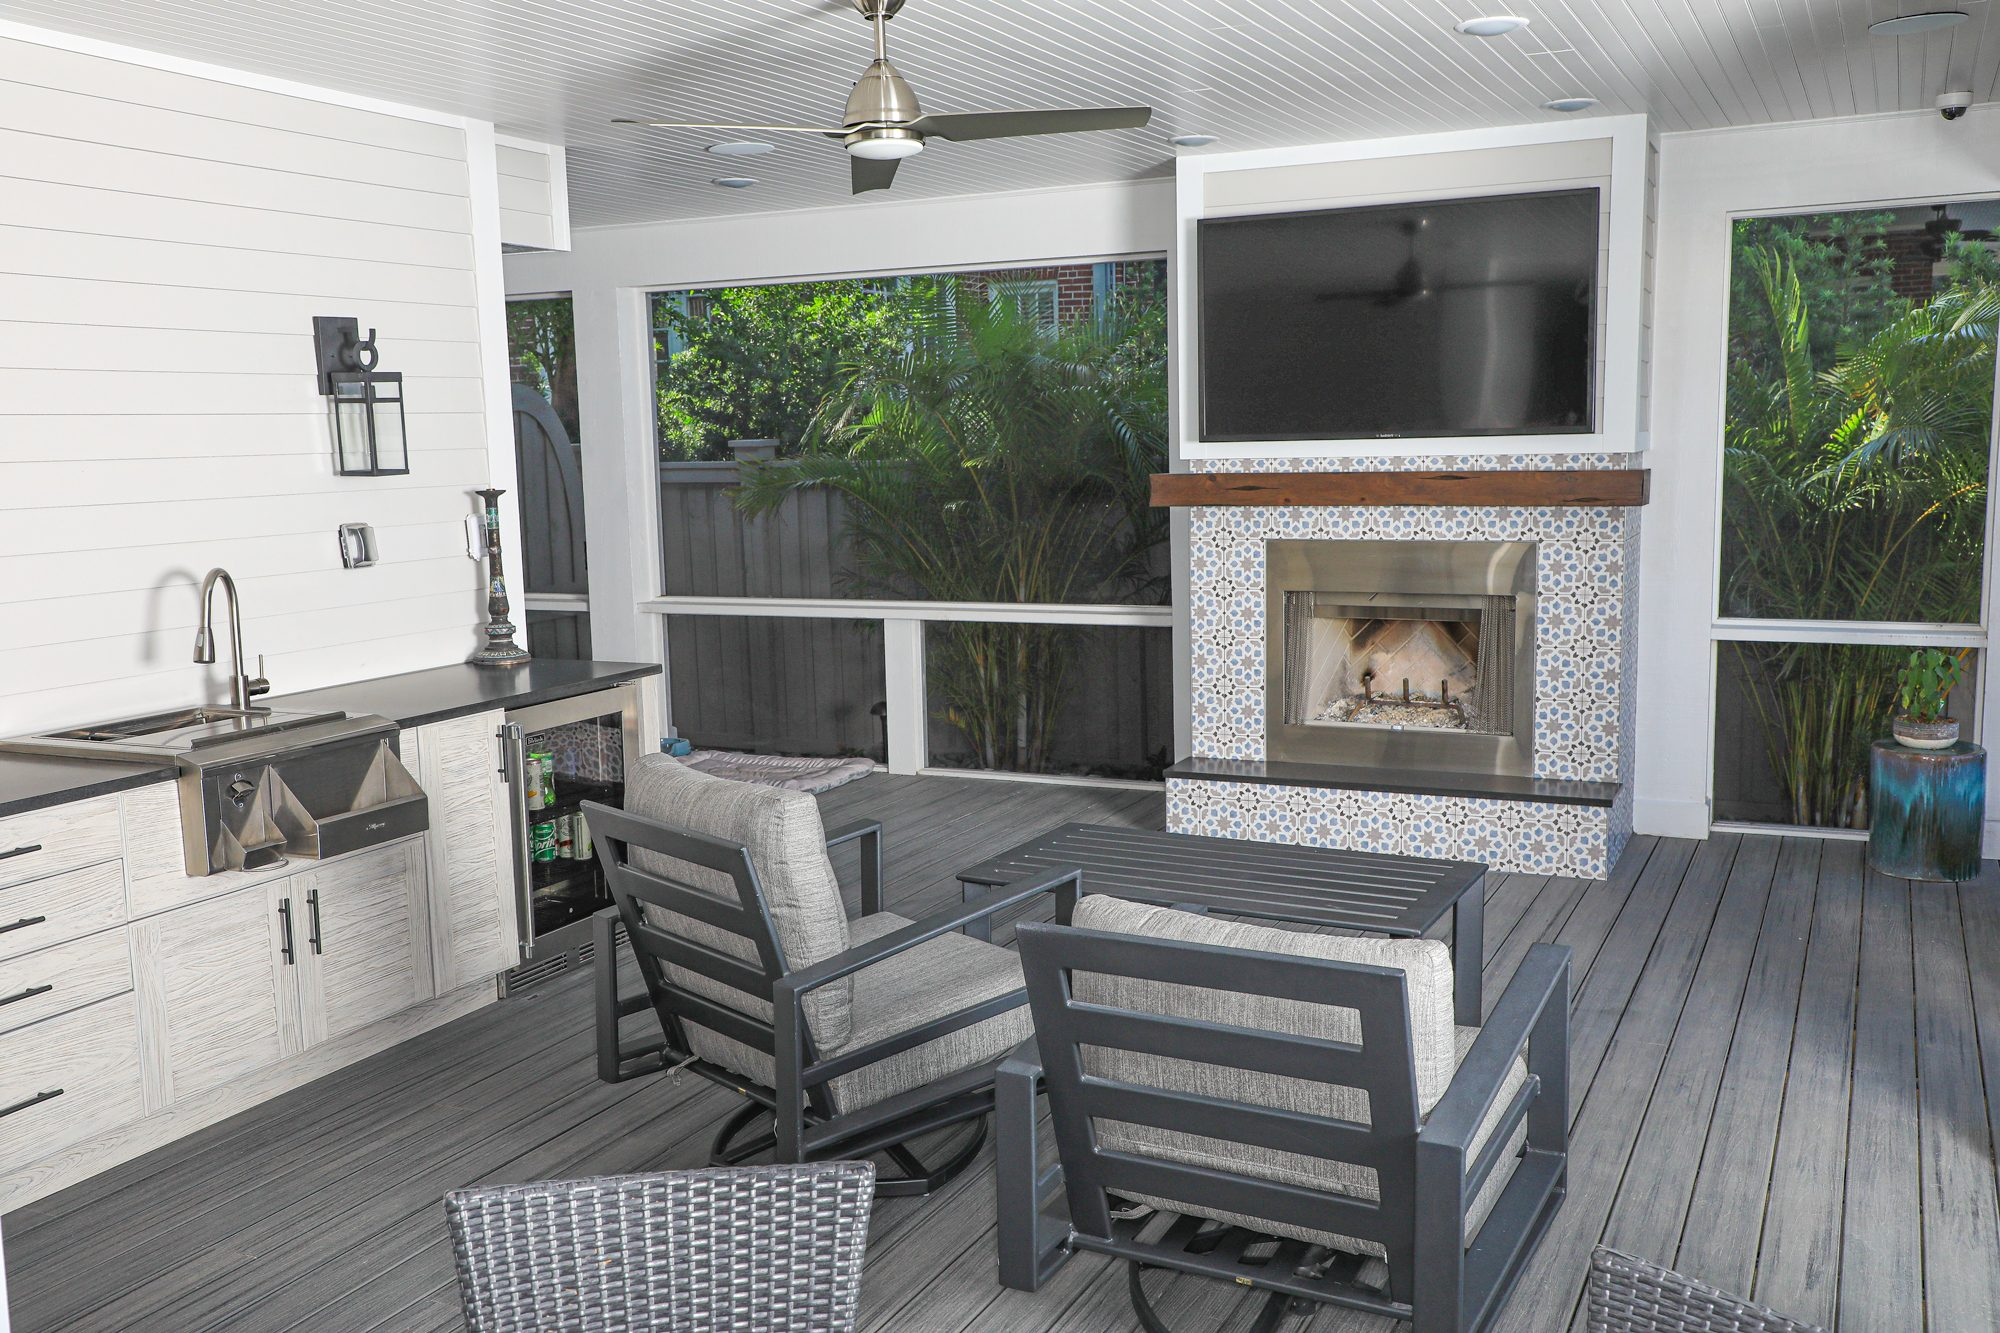 Wood Burning Outdoor Fireplace And Wet Bar